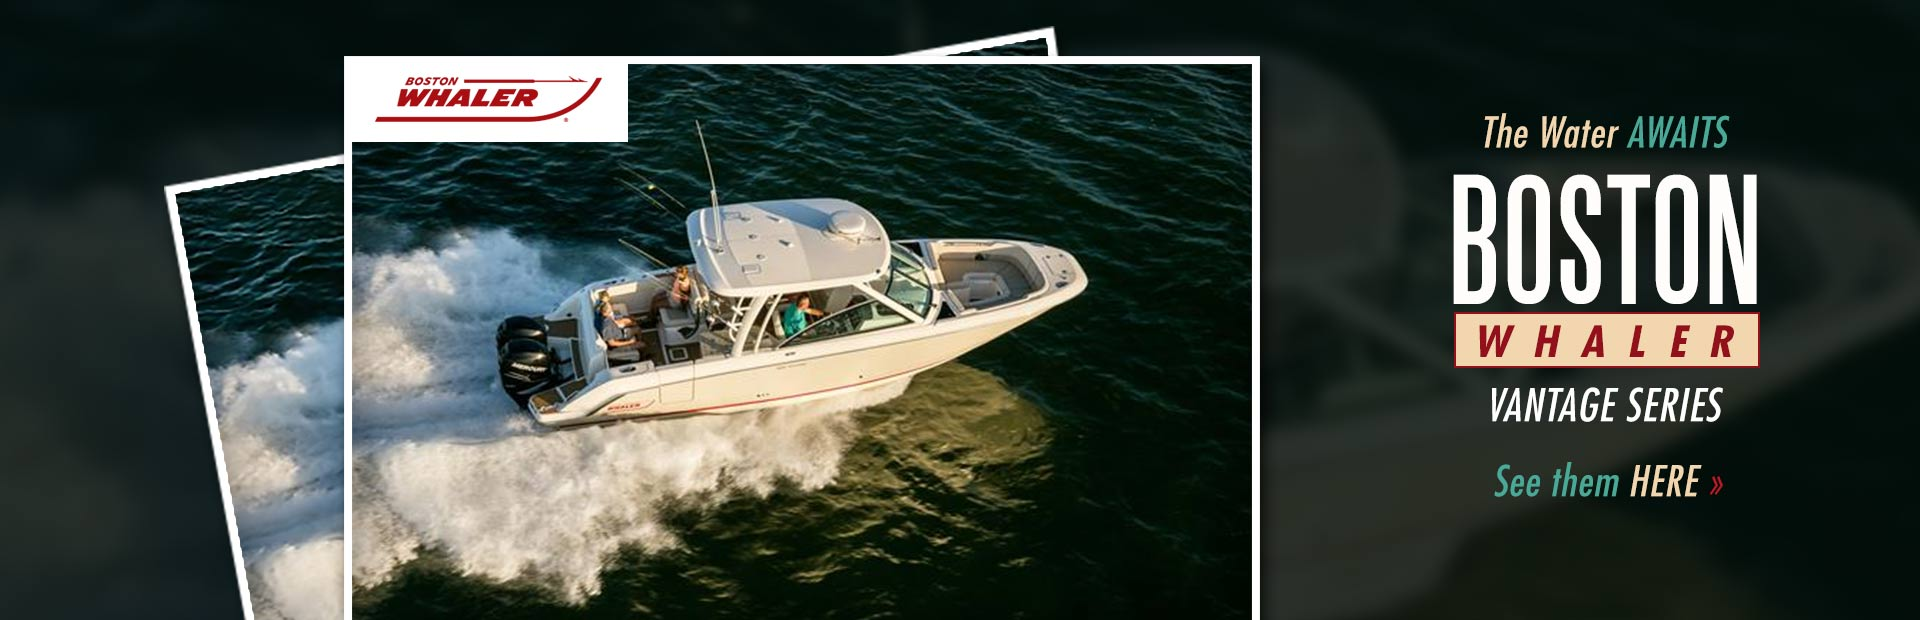 Boston Whaler Vantage Series: Click here to view the lineup.